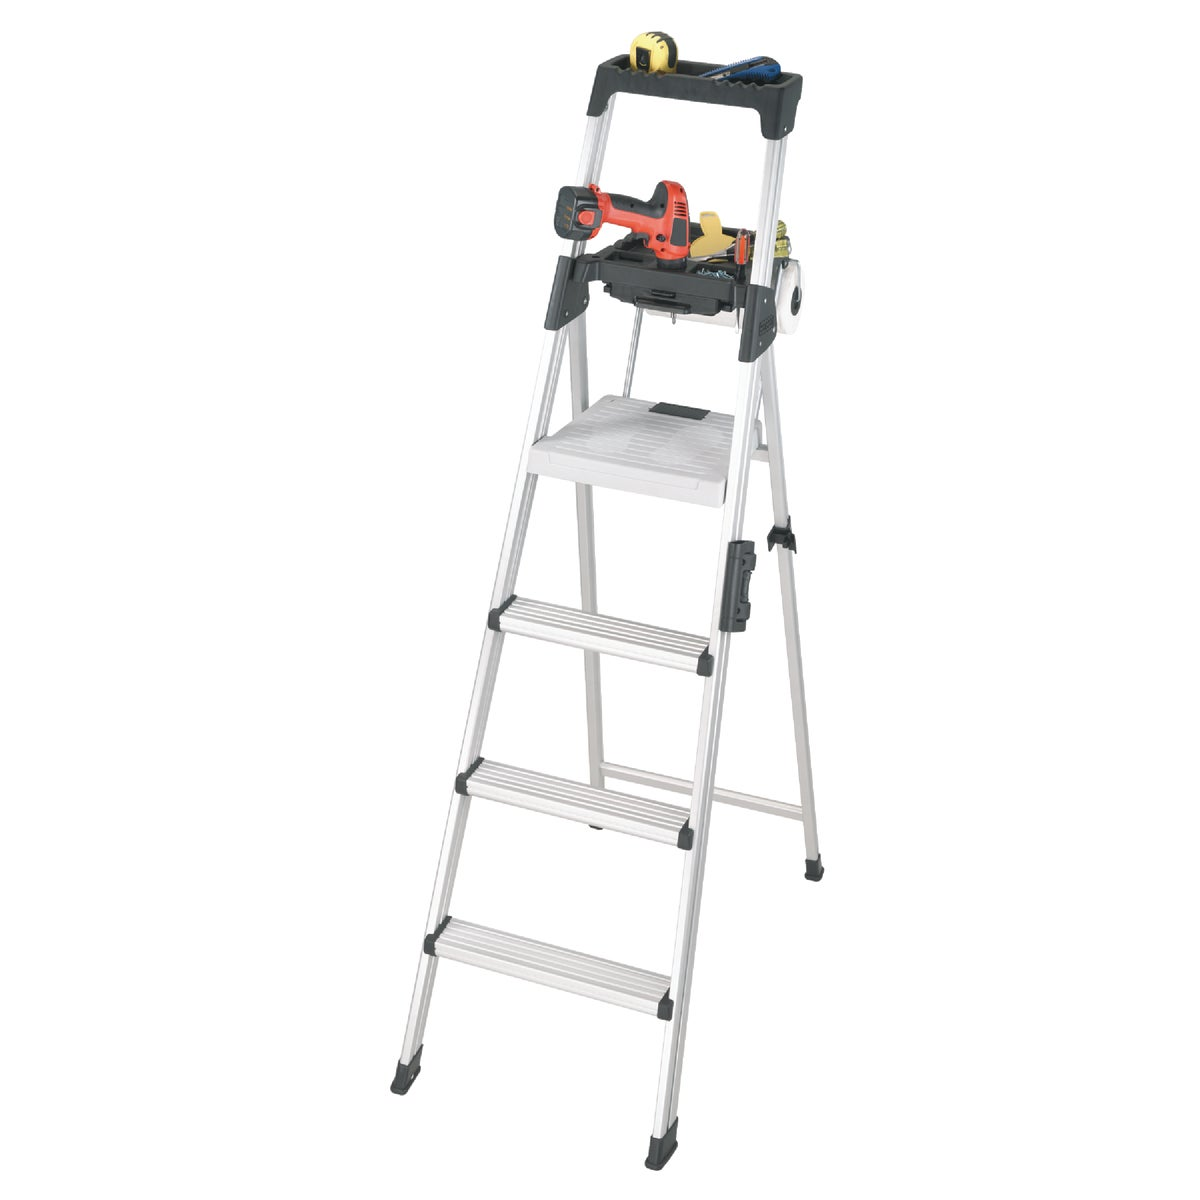 T-1A 6' ALUM STEPLADDER - 20-61A-ABL by Cosco    J Myalls